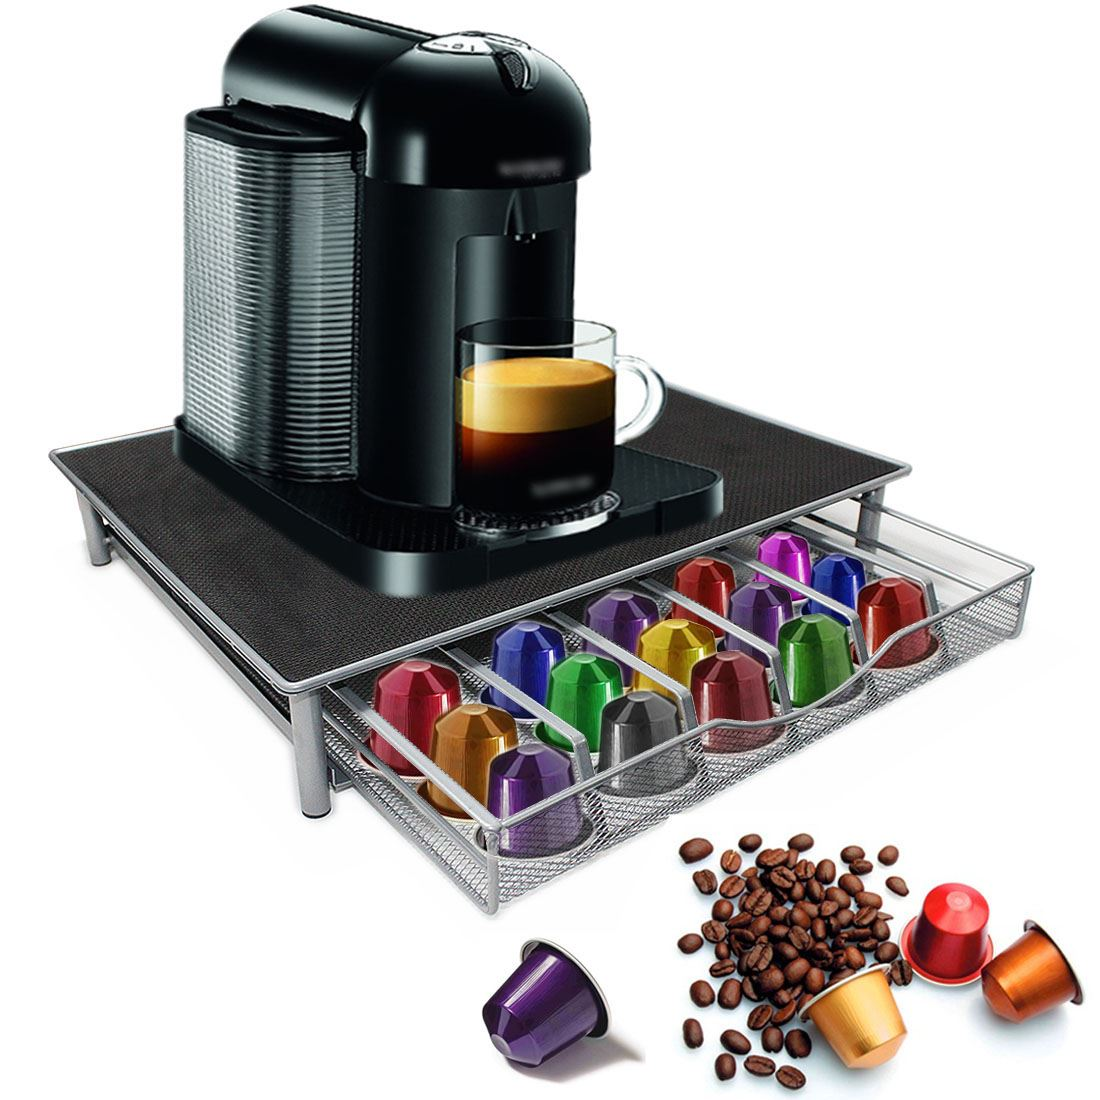 gb machine caf plate forme capsule nespresso dolce gusto stockage tiroir ebay. Black Bedroom Furniture Sets. Home Design Ideas